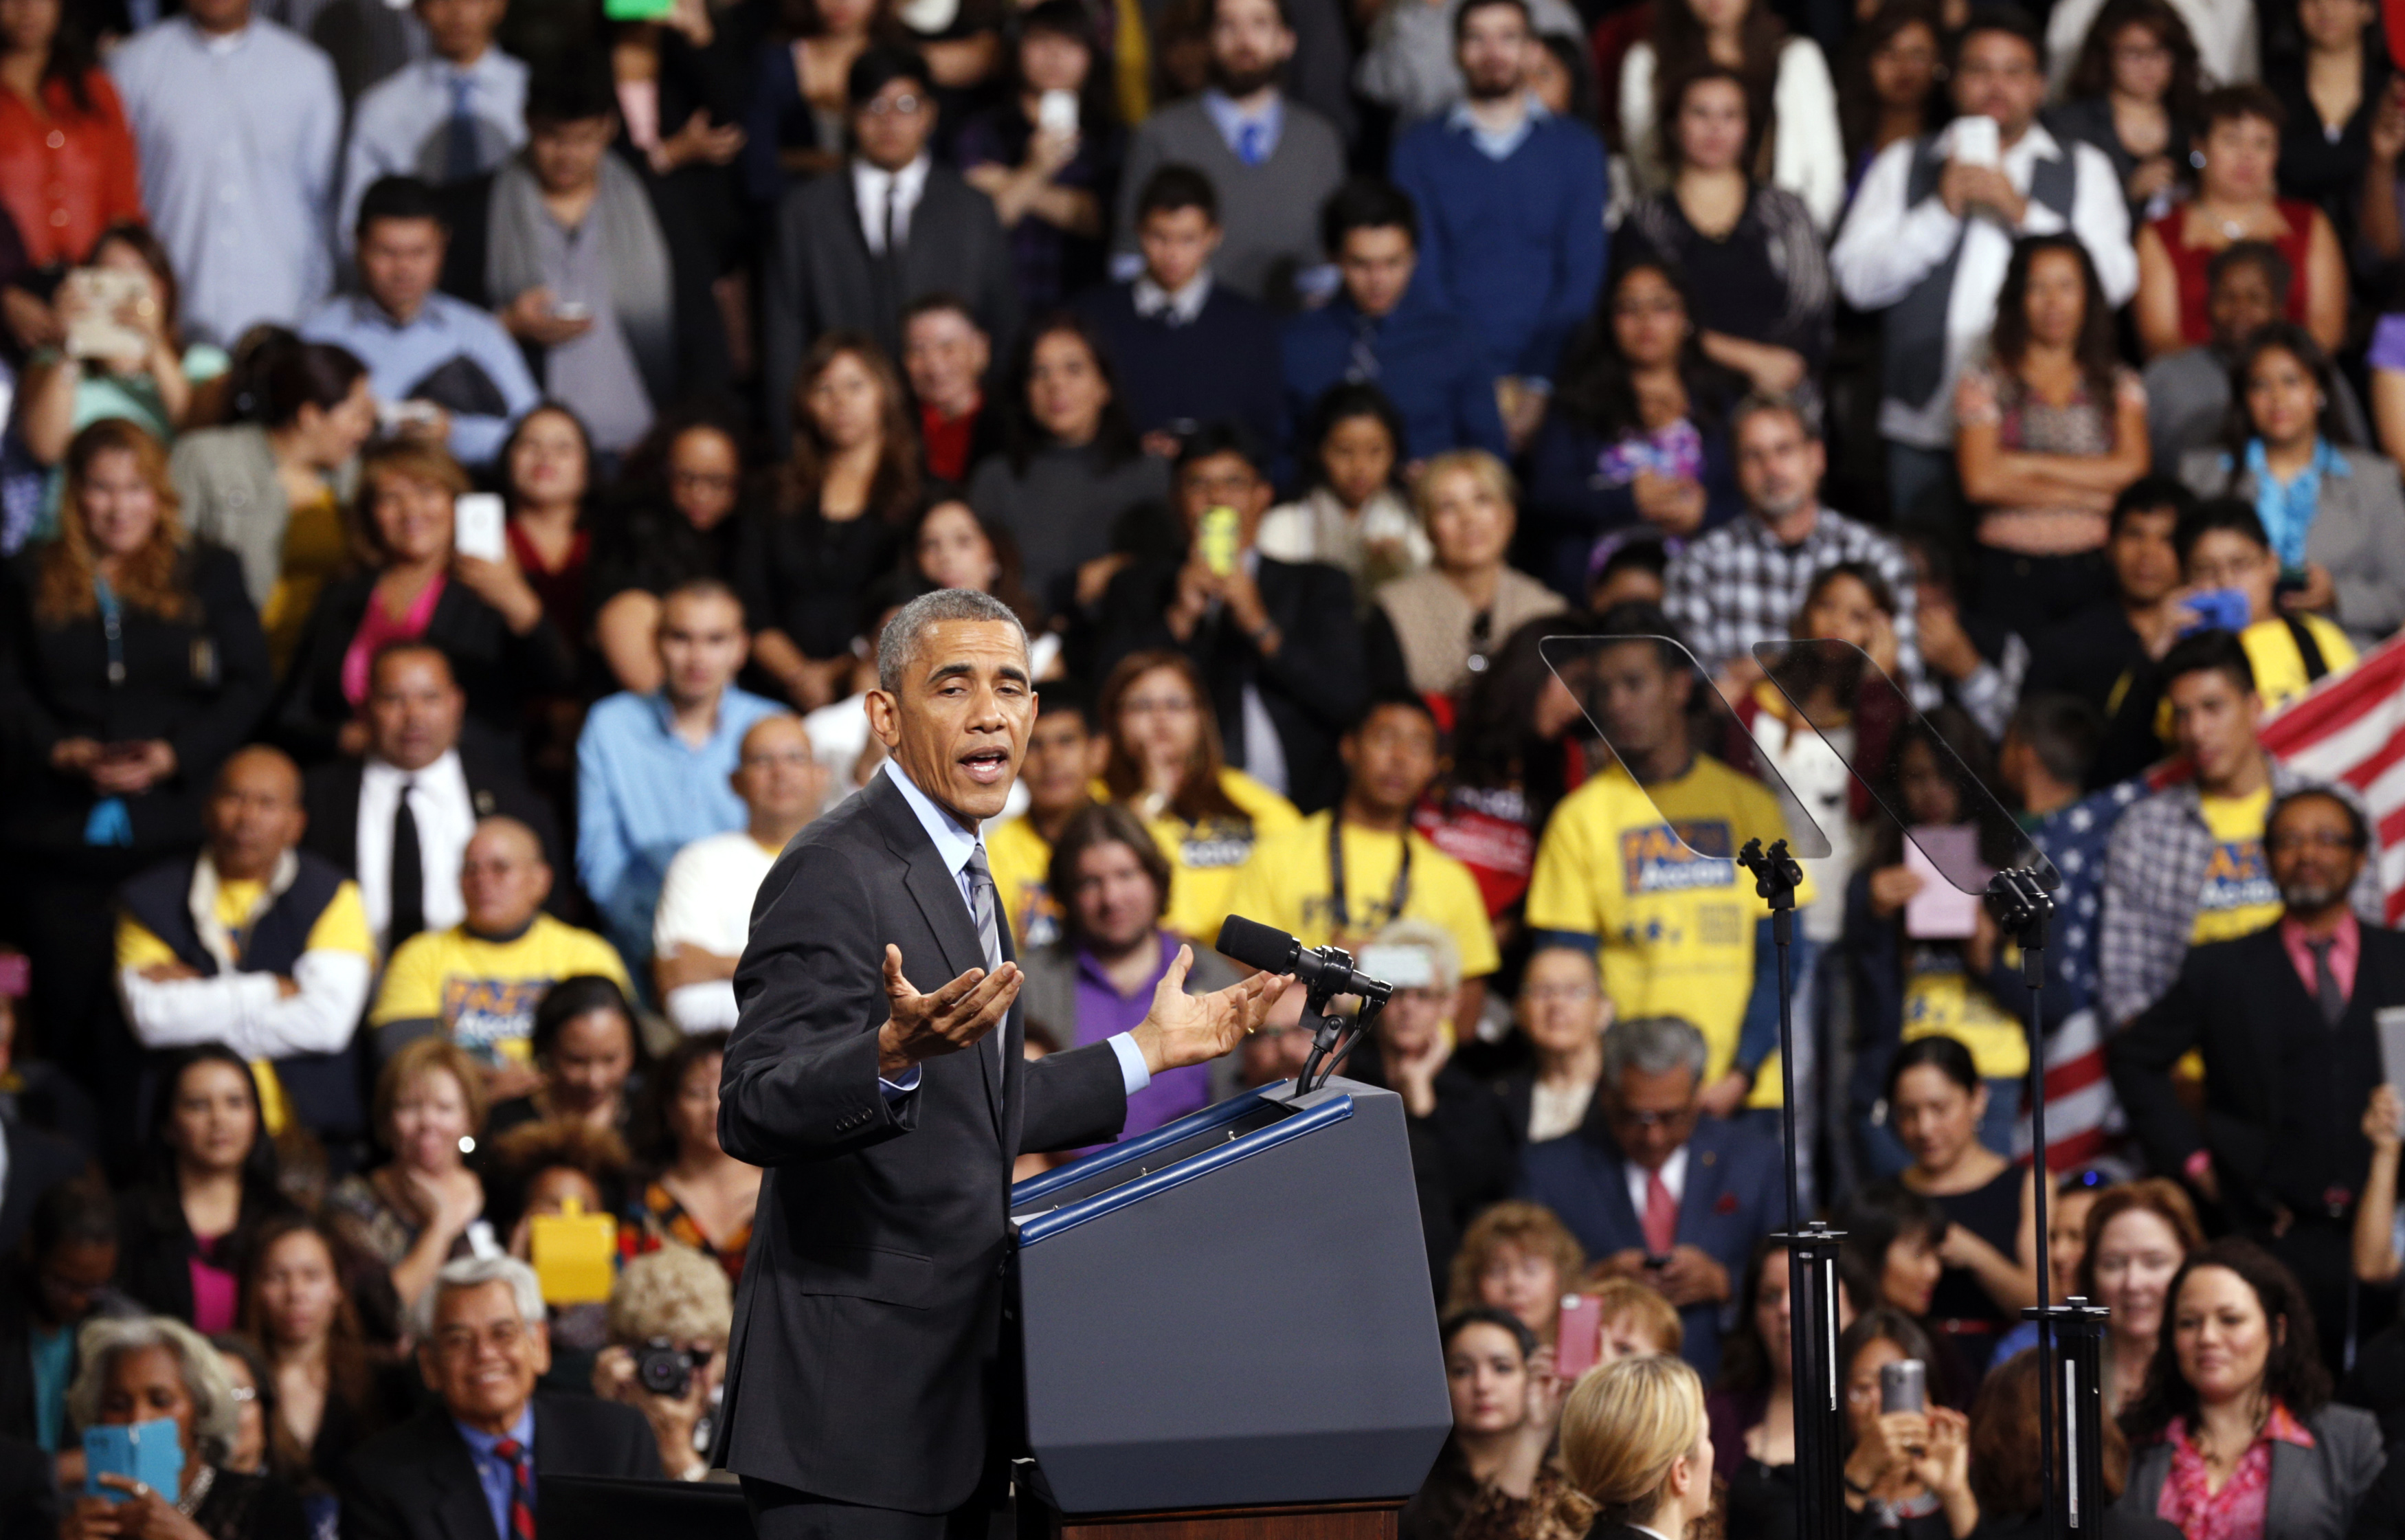 U.S. President Obama speaks about immigration reform during a visit to Del Sol High School in Las Vegas, Nevada